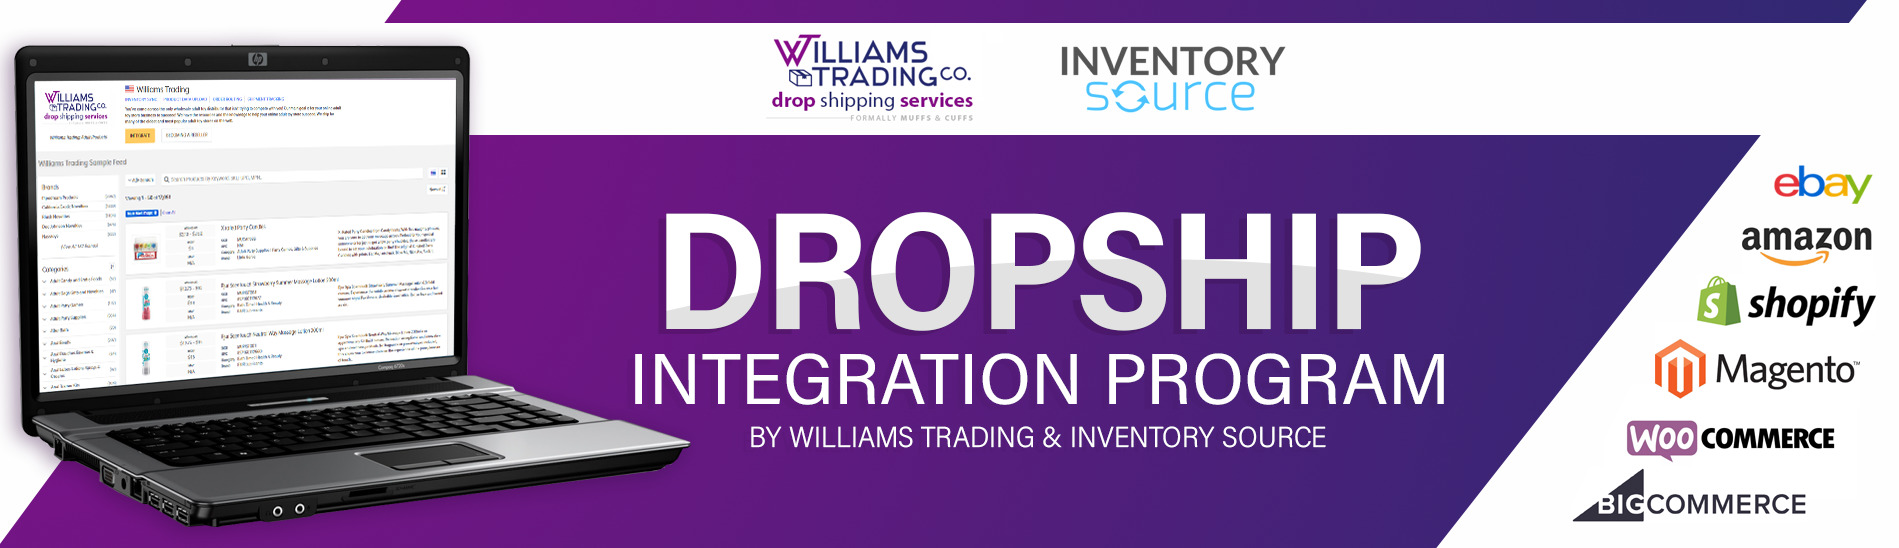 williams-trading-company-dropship-program_storerotica